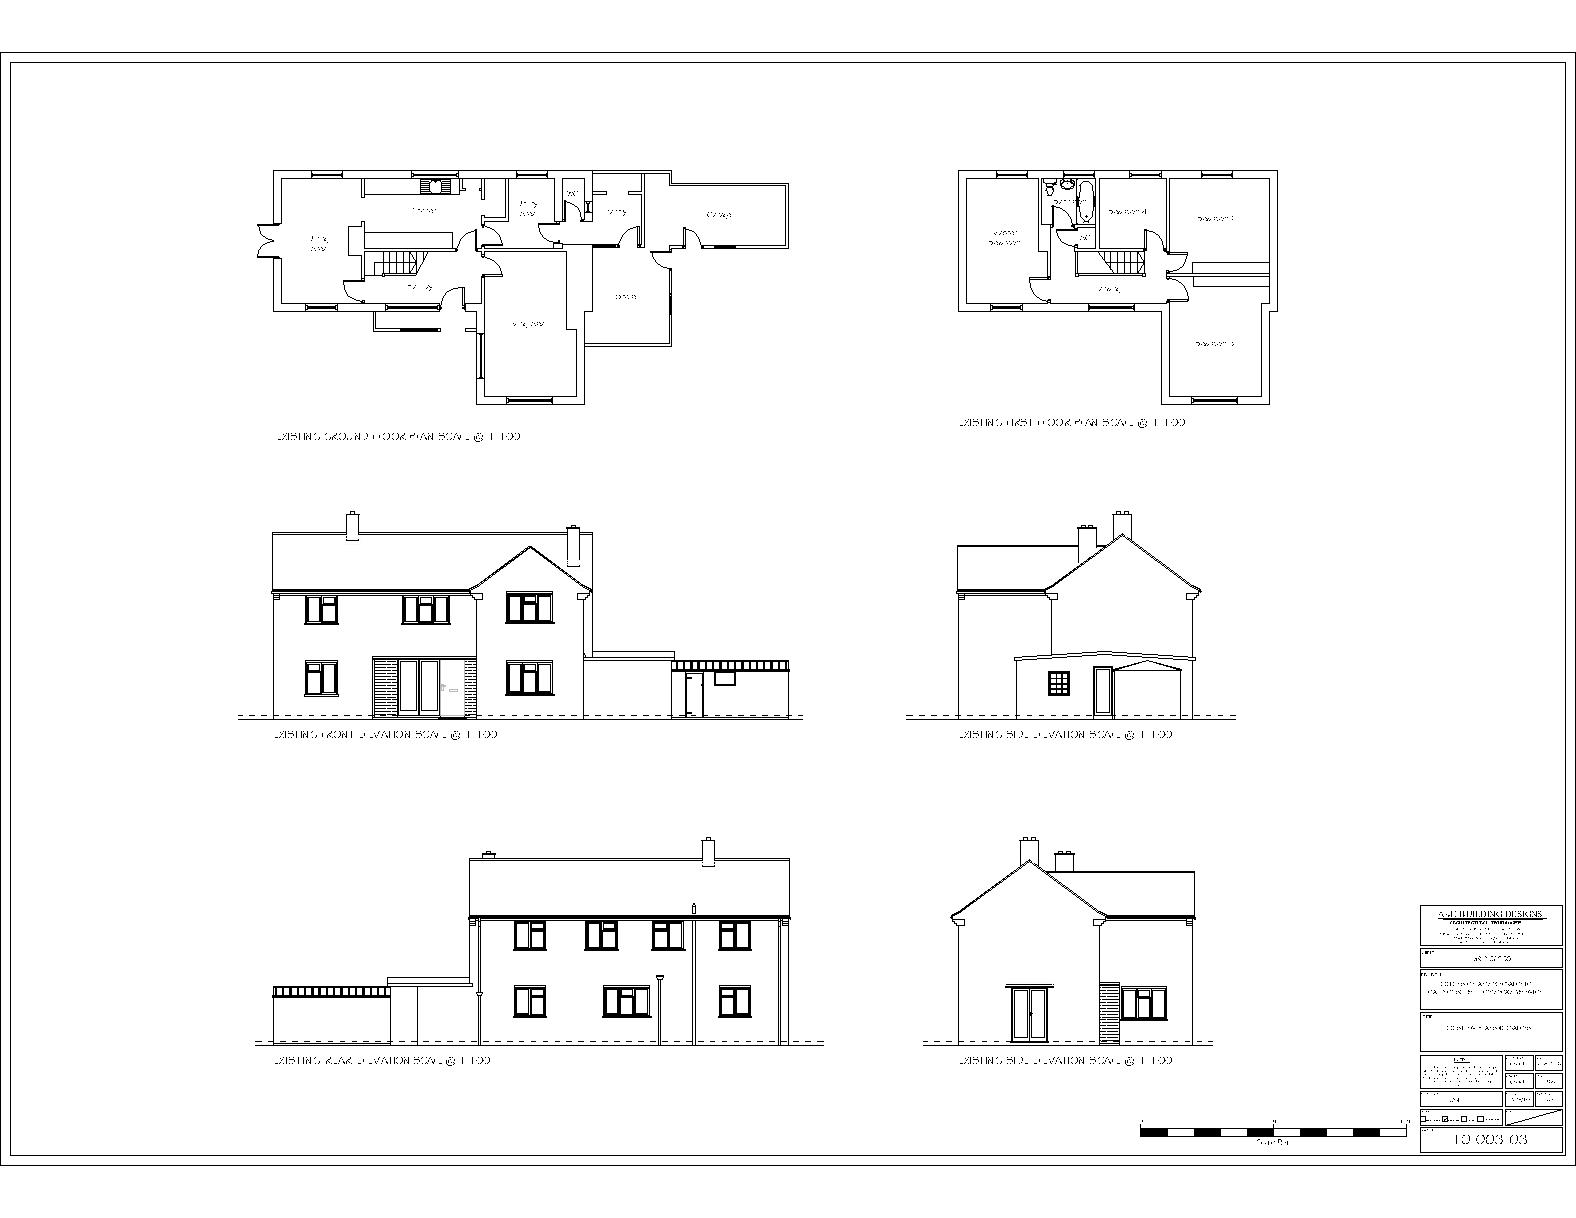 House plans and design architectural house plans elevations House plan and elevation drawings